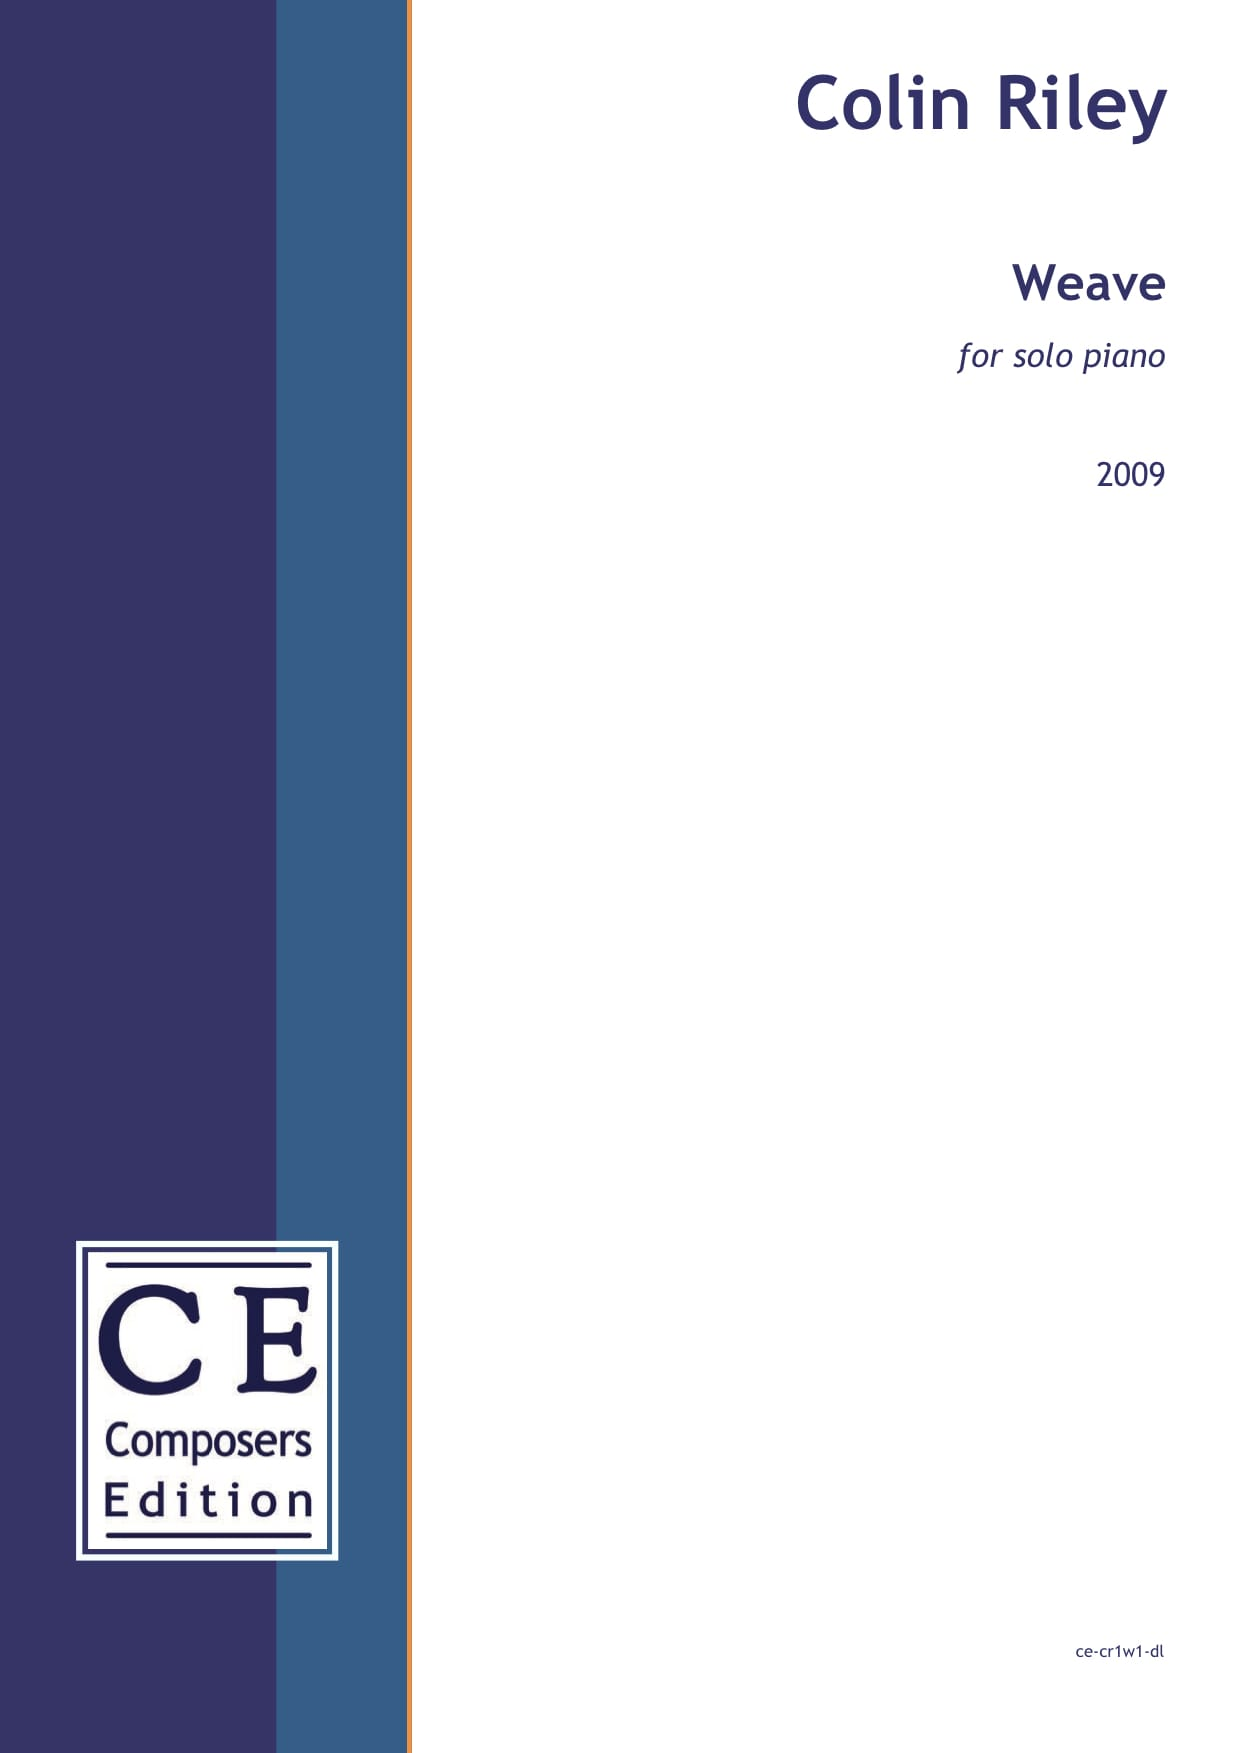 Colin Riley: Weave for solo piano